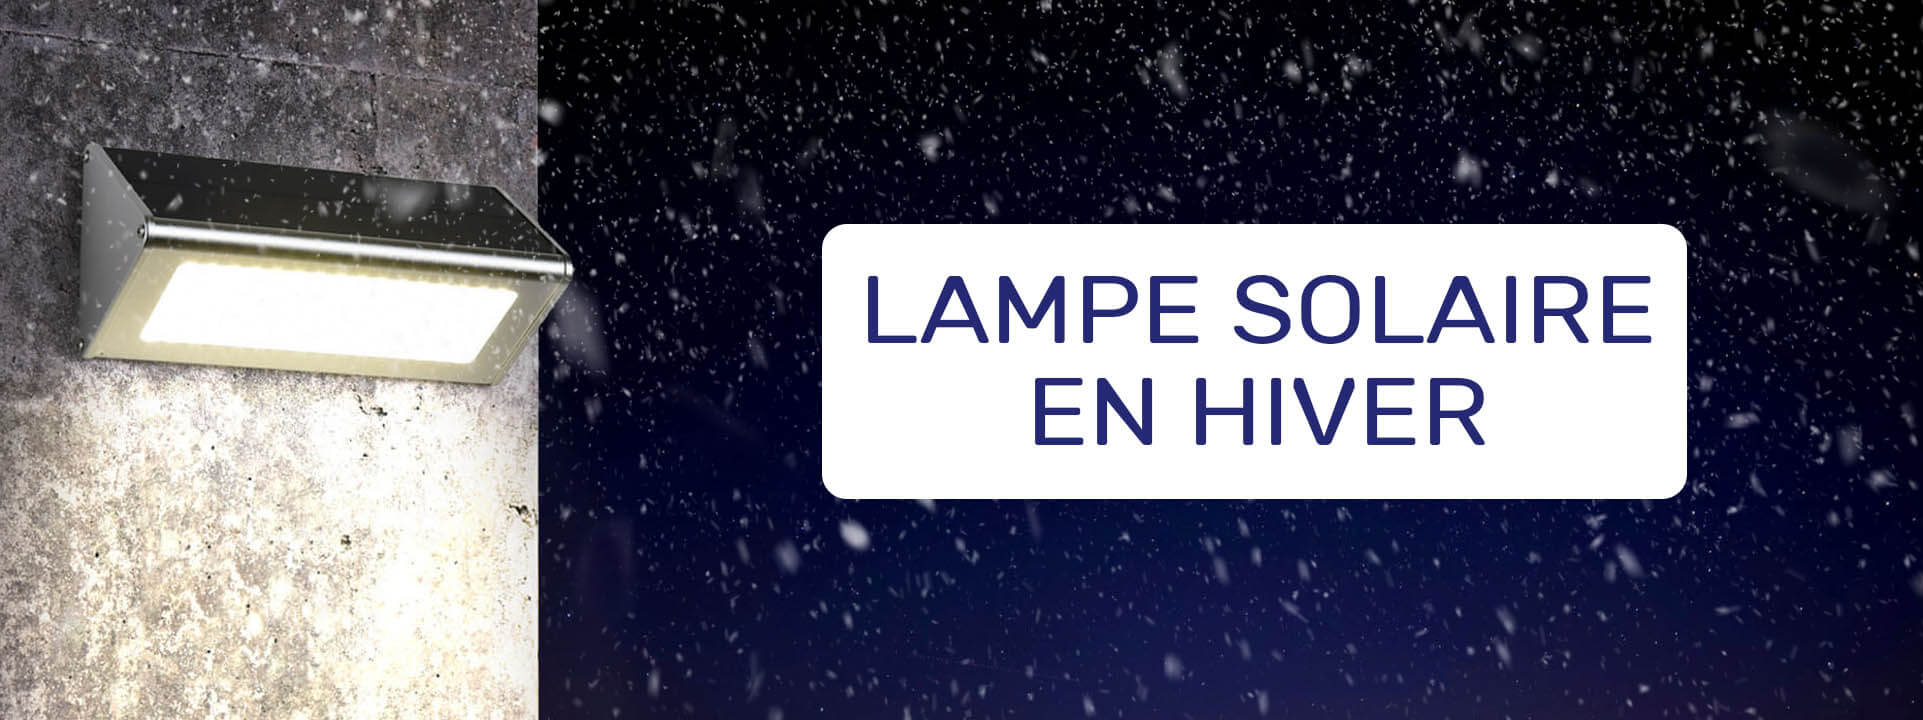 lampe solaire hiver